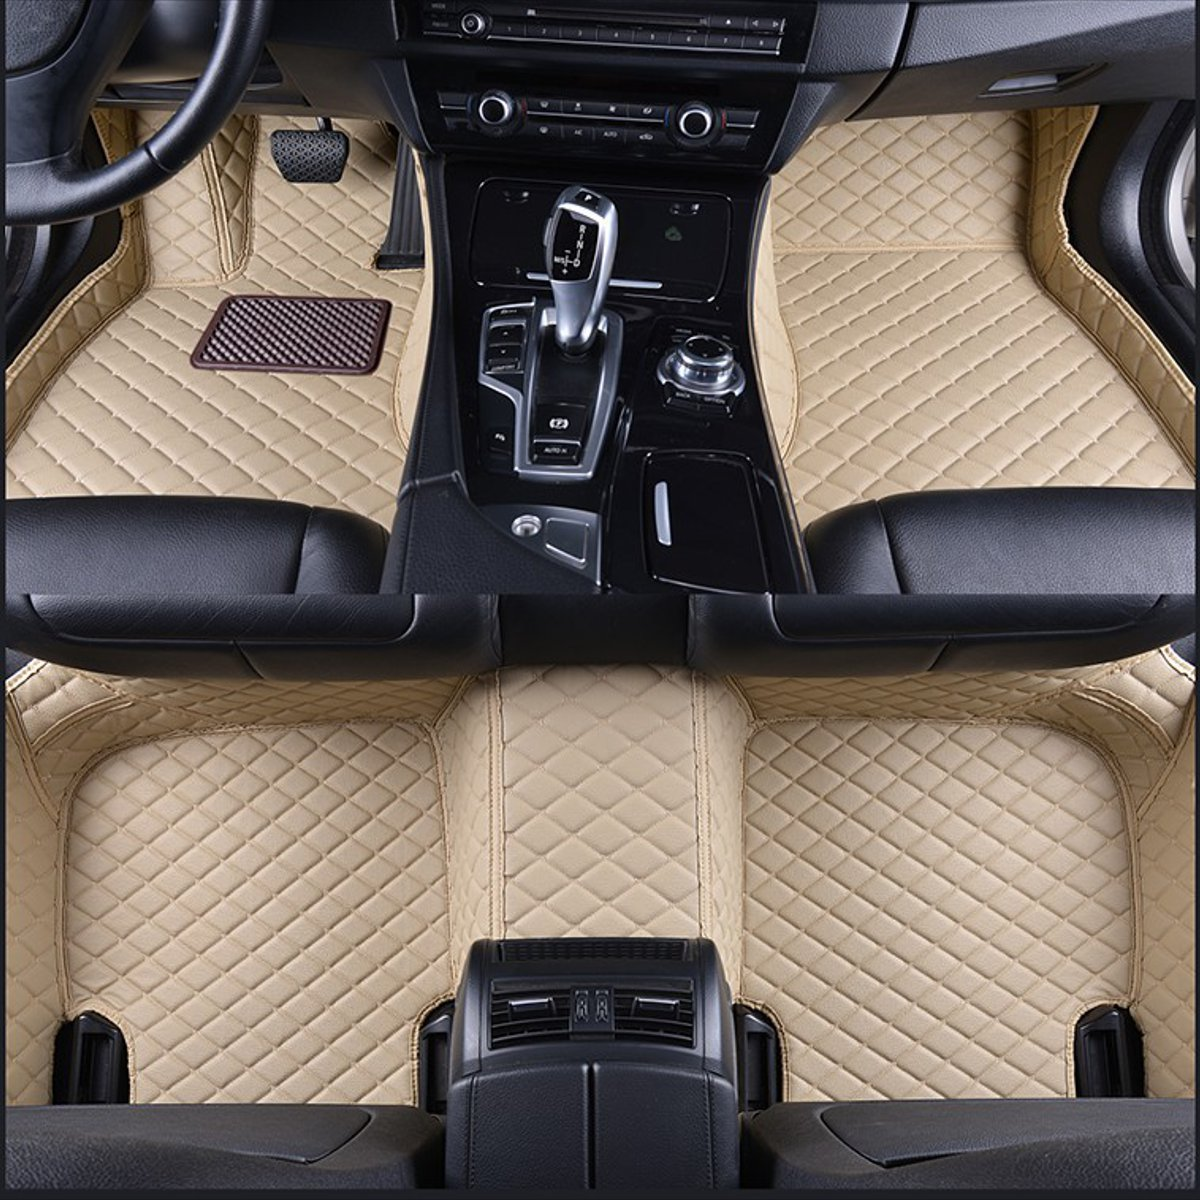 Car Front Rear PU Leather Floor Mats Set Liner Waterproof 5 Seat Custom Mats For BMW X5 E70 2007 2008 2009 2010 2011 2012 2013 Car Front Rear PU Leather Floor Mats Set Liner Waterproof 5 Seat Custom Mats For BMW X5 E70 2007 2008 2009 2010 2011 2012 2013